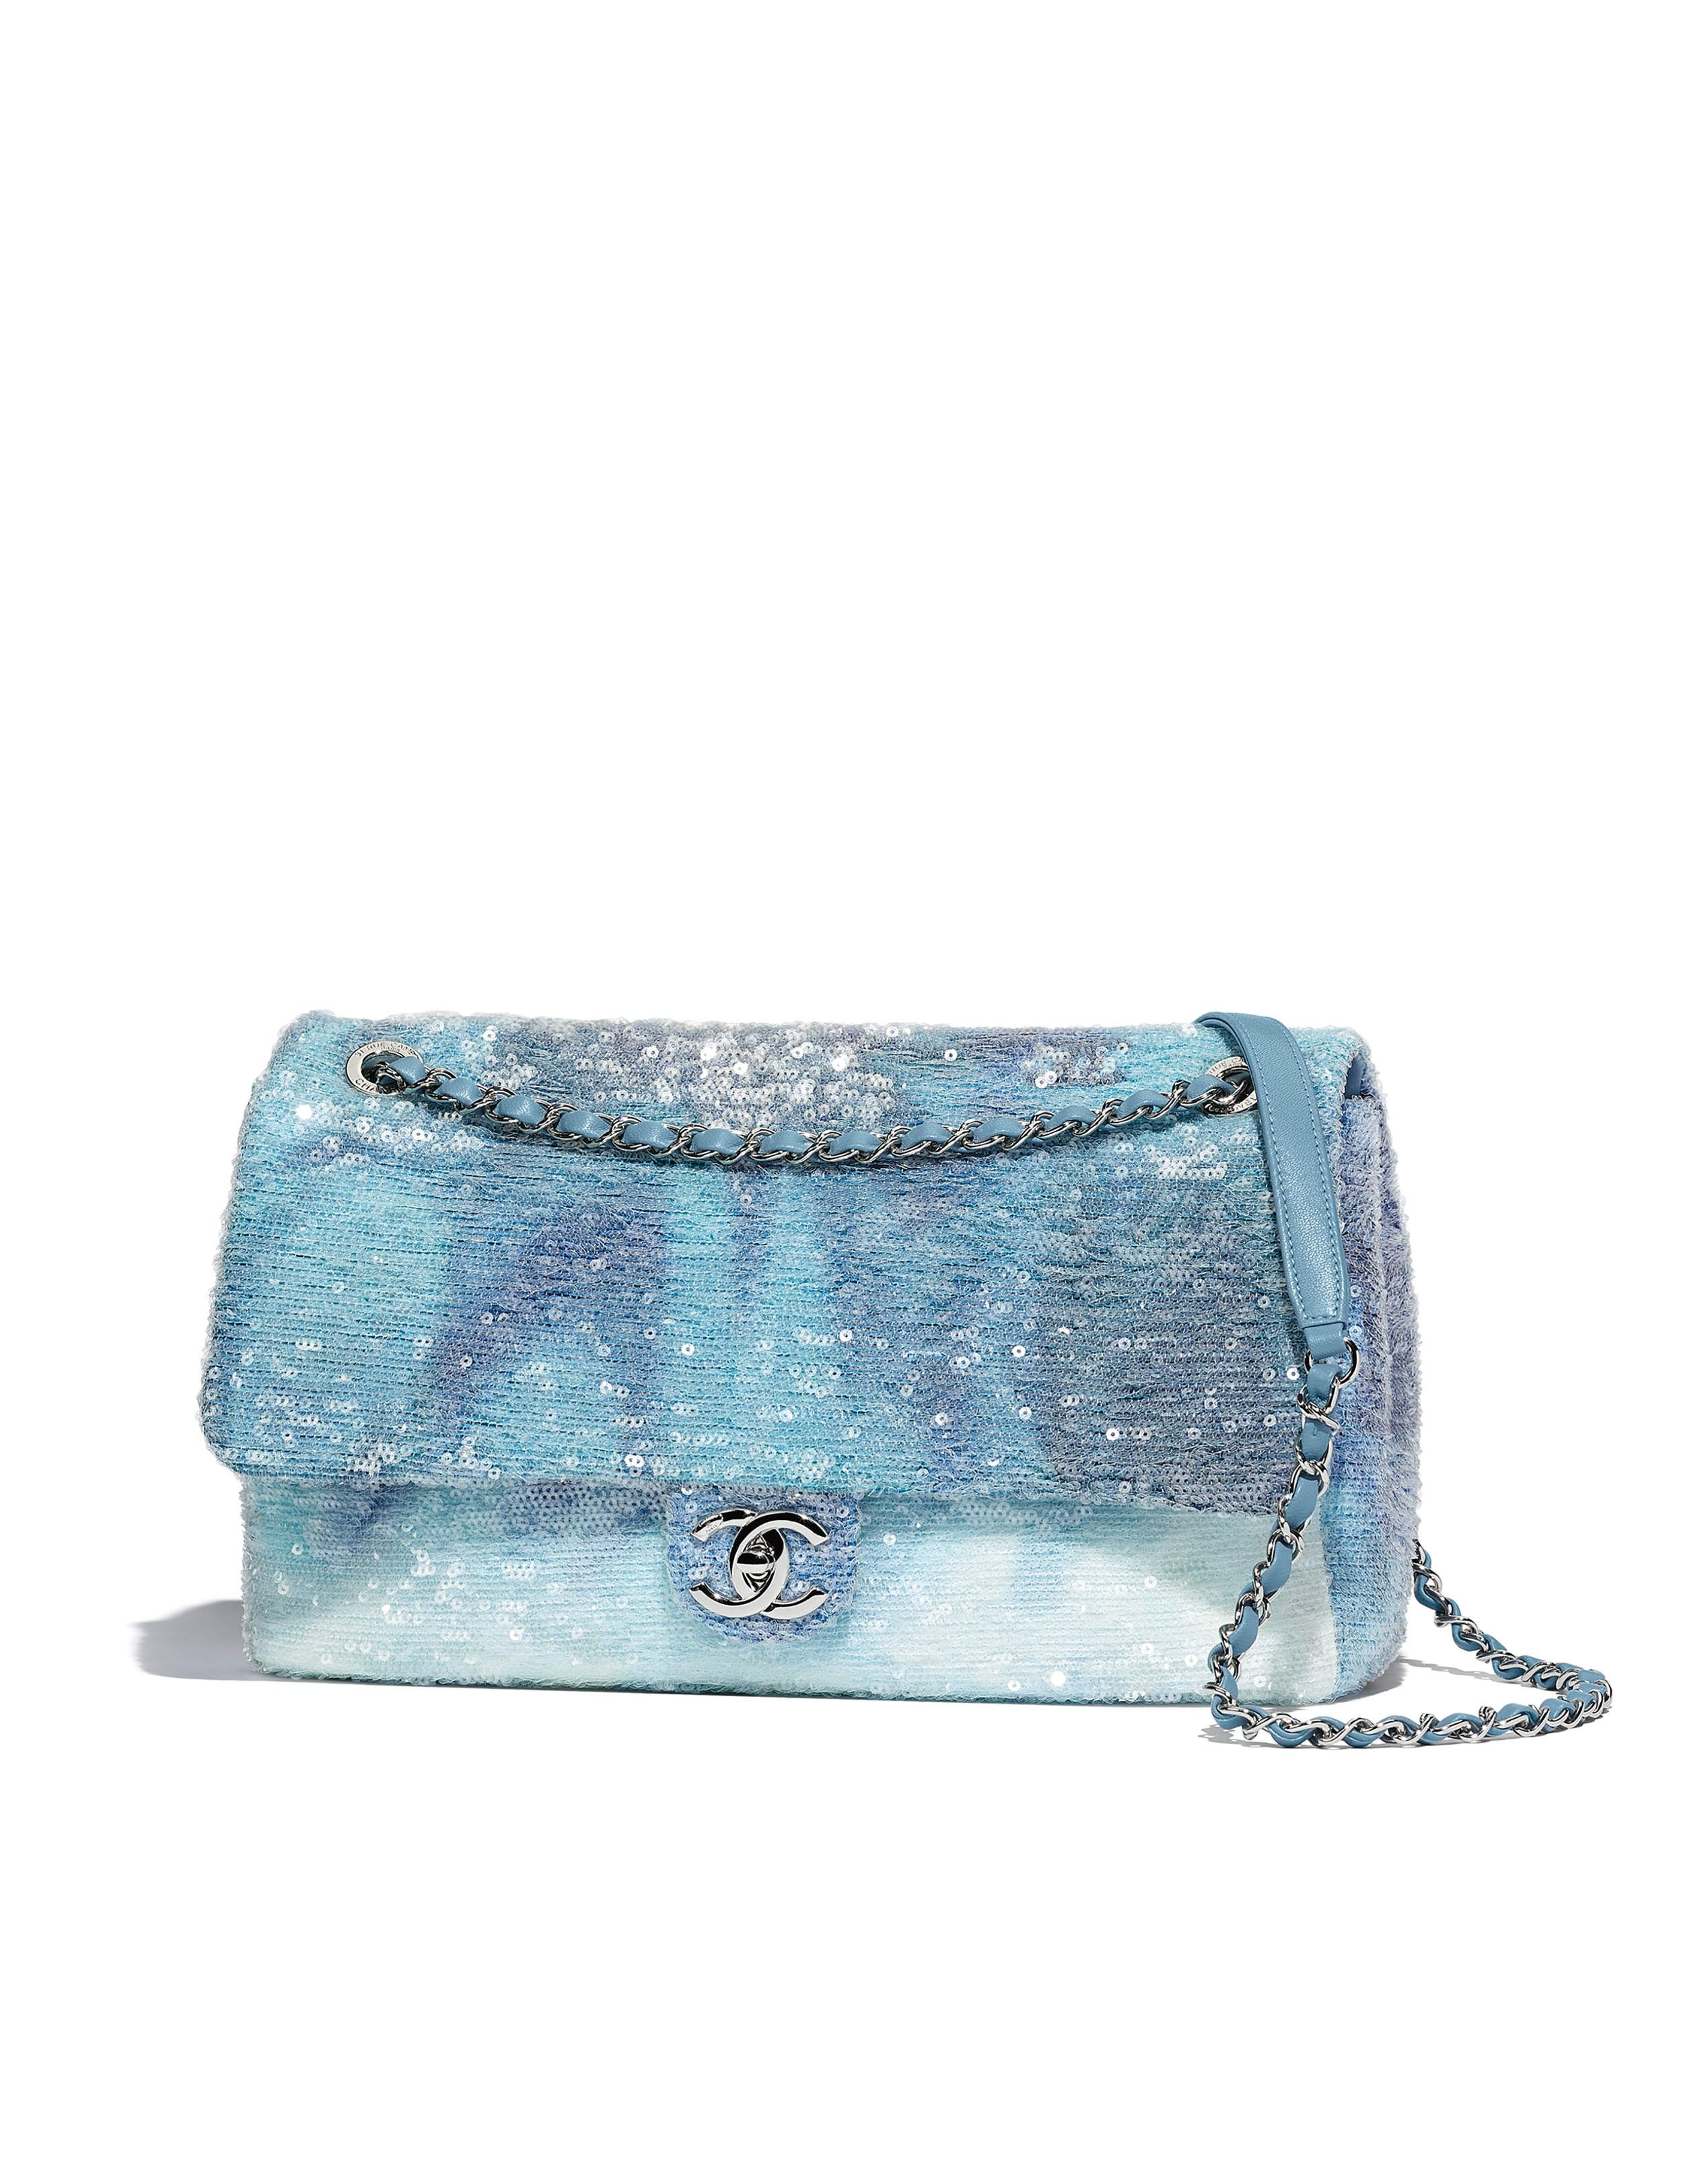 25f4a11202a00a Chanel - SS2018 | Light blue, blue & turquoise sequin flap bag ...